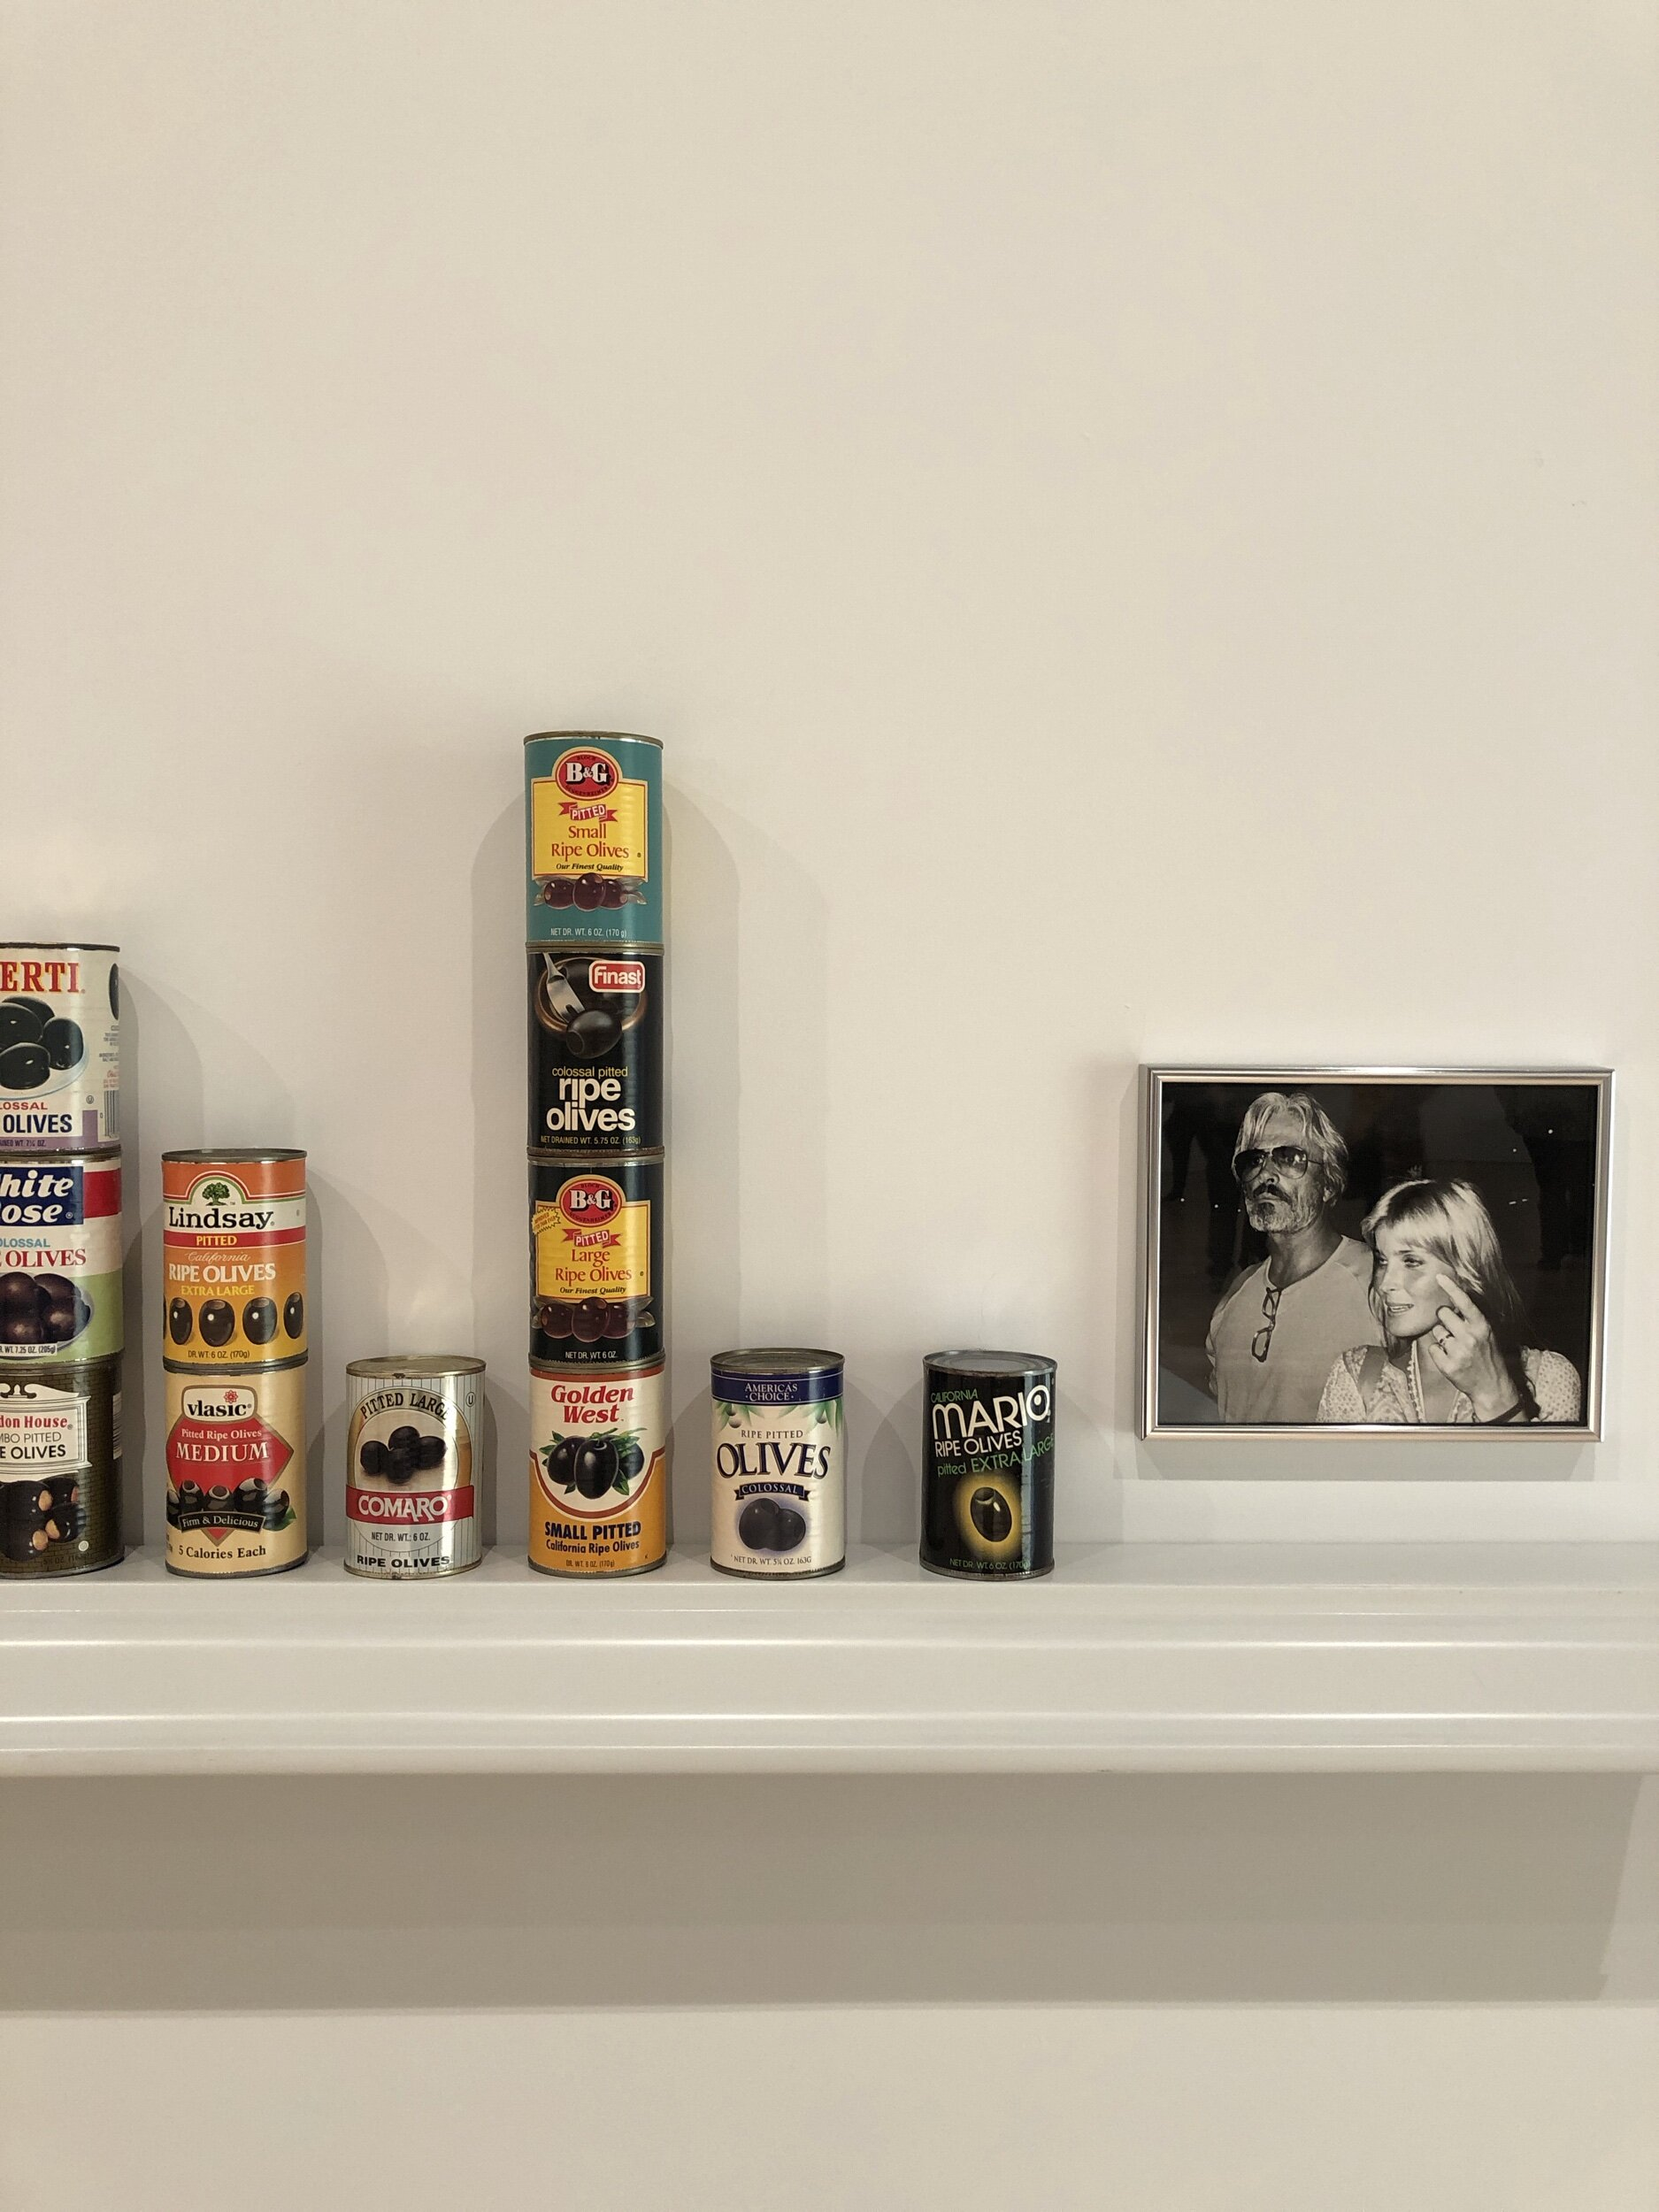 Teaching Bo to Count Backwards, 1996-97   This gallery contains Harrison's work from the nineties when she was starting her career. In the Bo Derek piece there are cans of olives stacked on an inverted gutter with photographs of Bo Derek and her husband John. As you look at the cans from left to right you will notice that the number of olives depicted on the labels gradually decreases while the Bo's expression transforms at the same time. Her husband John's expression seems aloof while Bo becomes increasingly assertive. Bo Derek is probably most associated with the movie  10  which was her rating as a beauty and also references the manner of counting via the canned olives in an absurd way. Harrison is usually referencing art history in some way, and in this case we can see a relationship to Warhol's soup cans as well as the Minimalist focus on systems, especially systems of counting or recording and seriality in repetition.